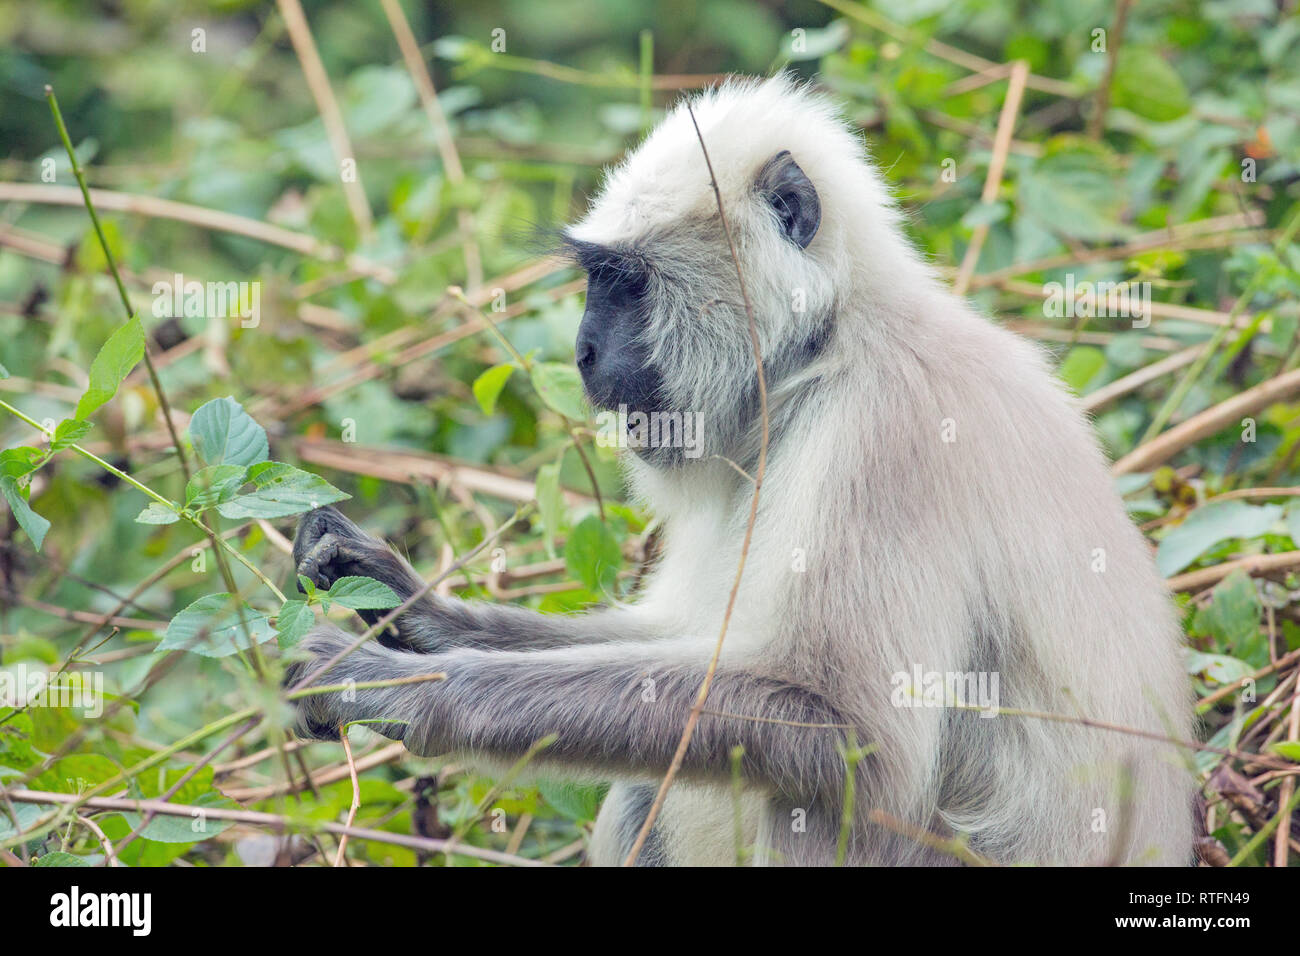 Hanuman or Grey or Gray or Common or Entellus Langur (Semnopithecus entellus). Portrait of an adult female, gathering green leaves to eat. - Stock Image